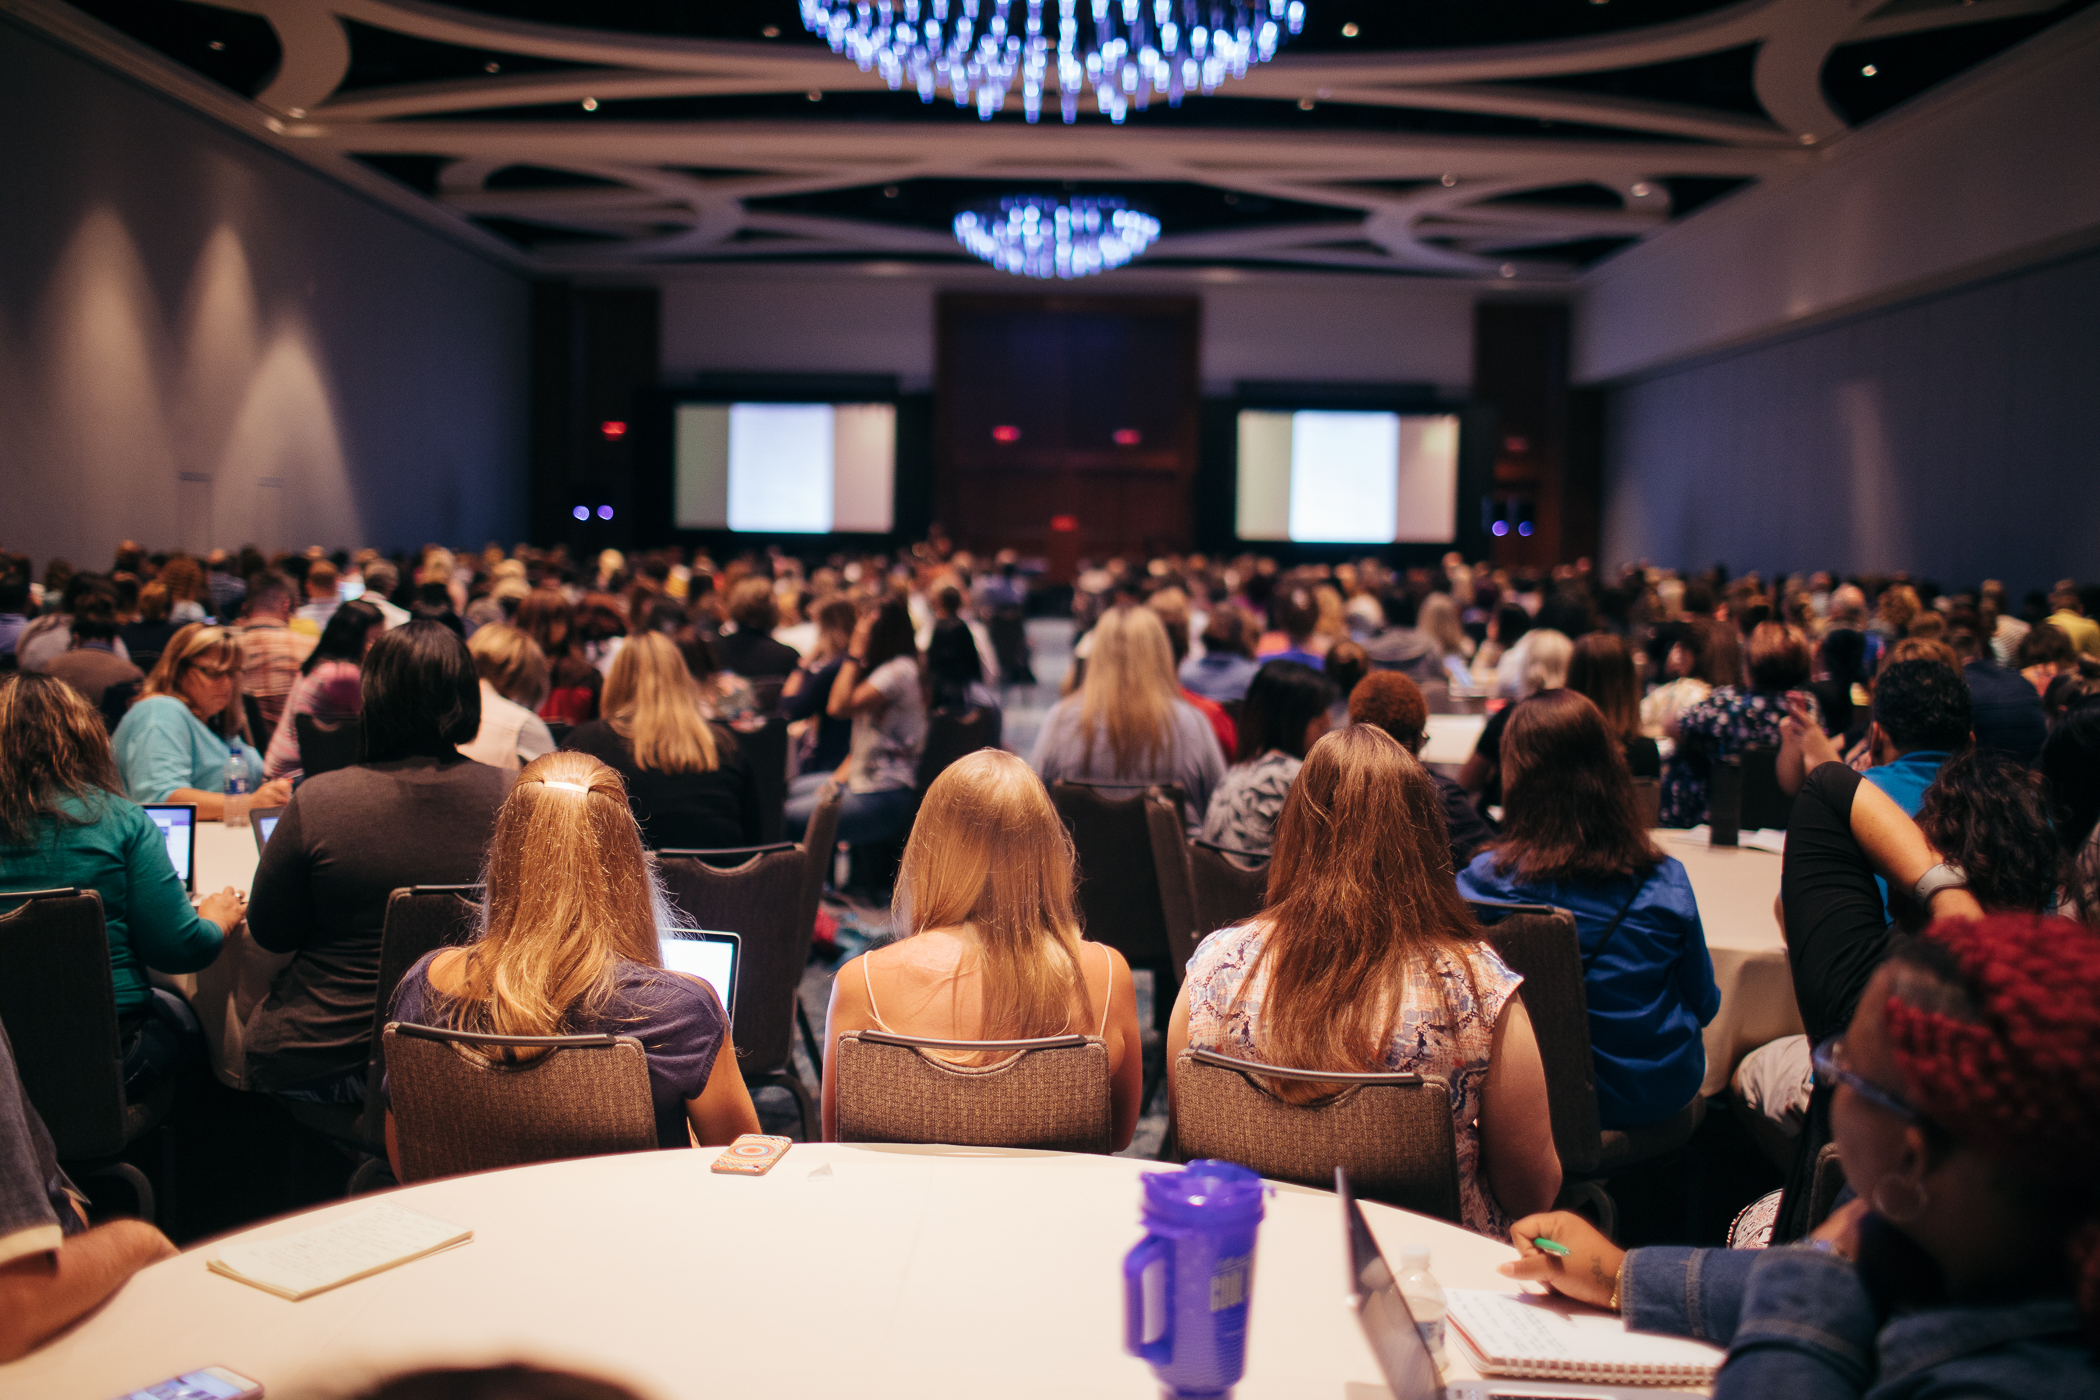 live event commercial photography brand storytelling for education florida conference photographer ©2018abigailbobophotography-116.jpg